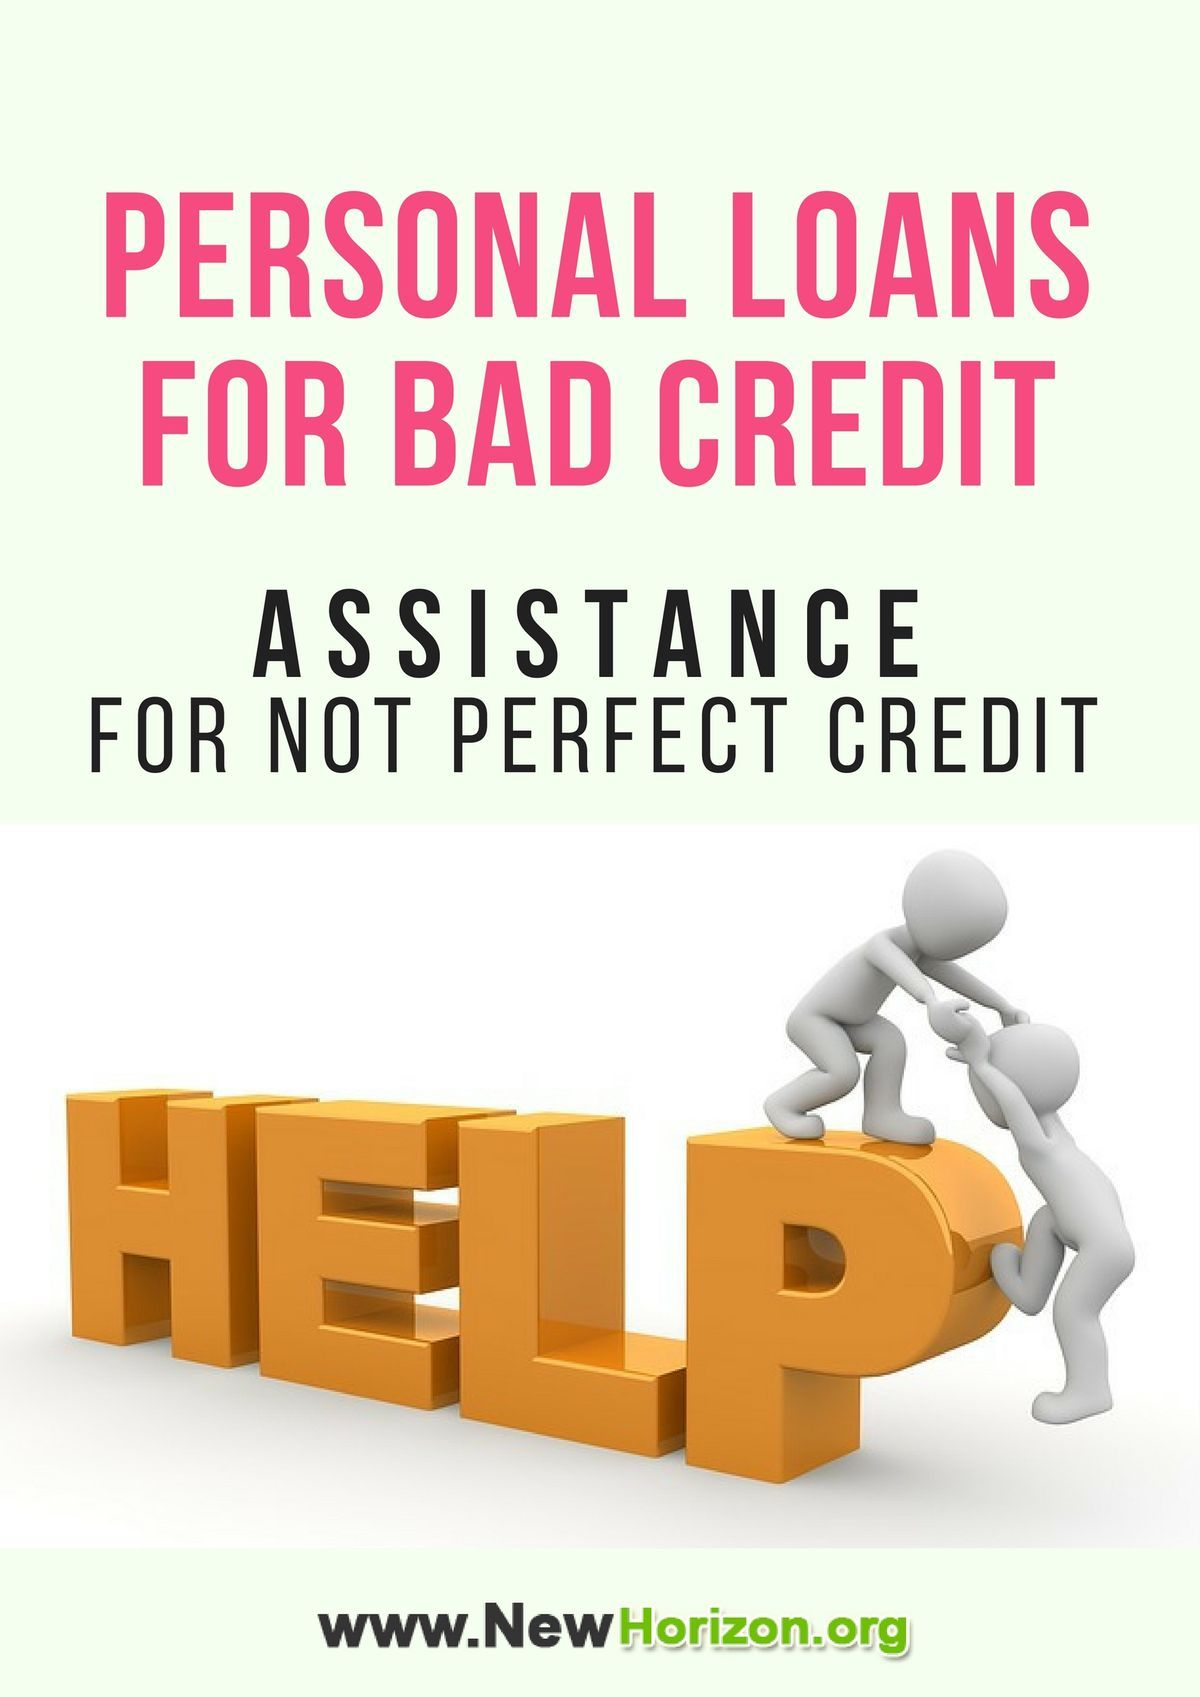 Personal loans for bad credit assistance for not perfect